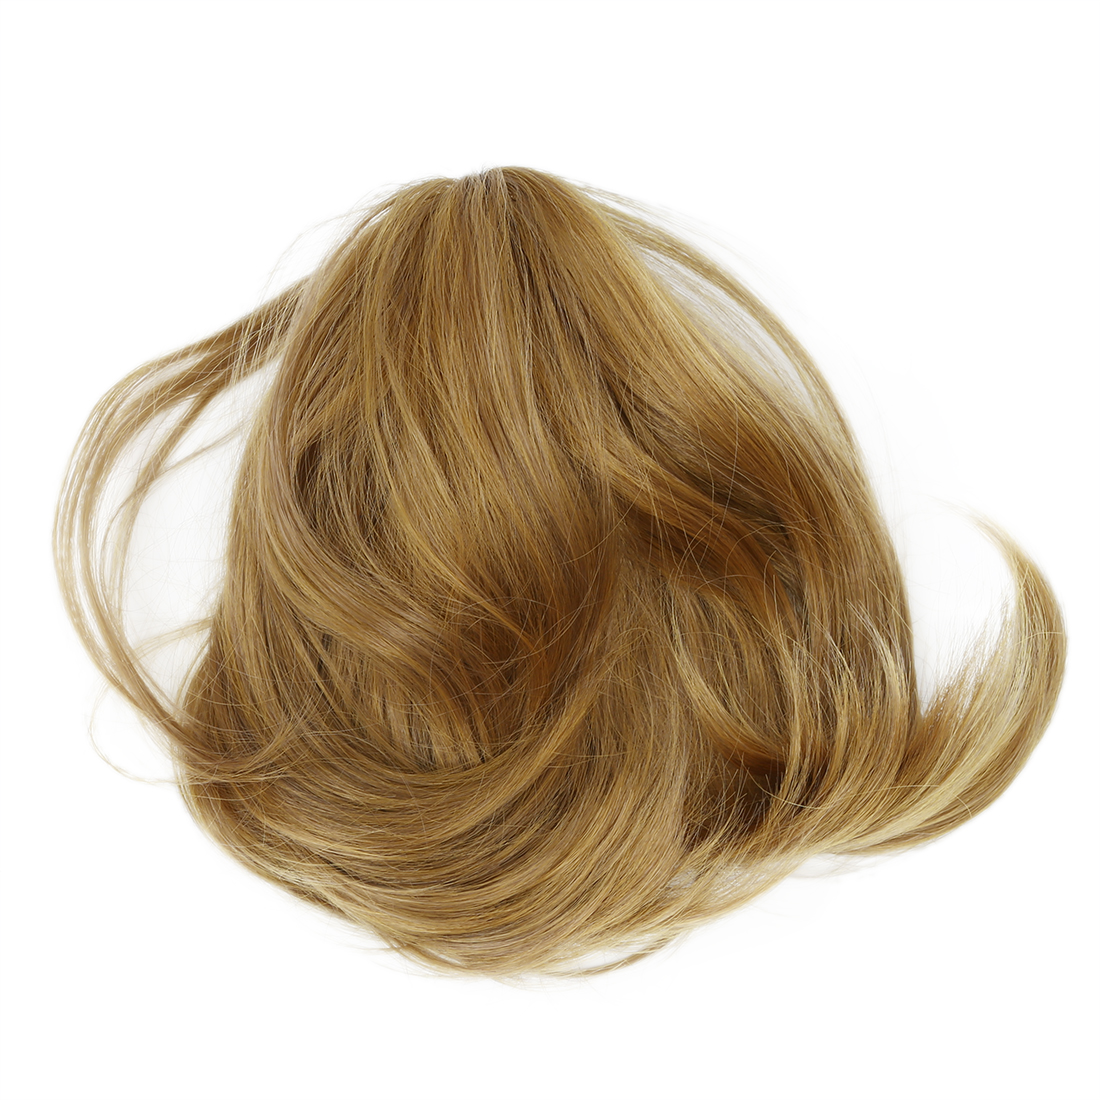 Short Ponytail Hair Extensions synthetic Hair Wavy Claw ...